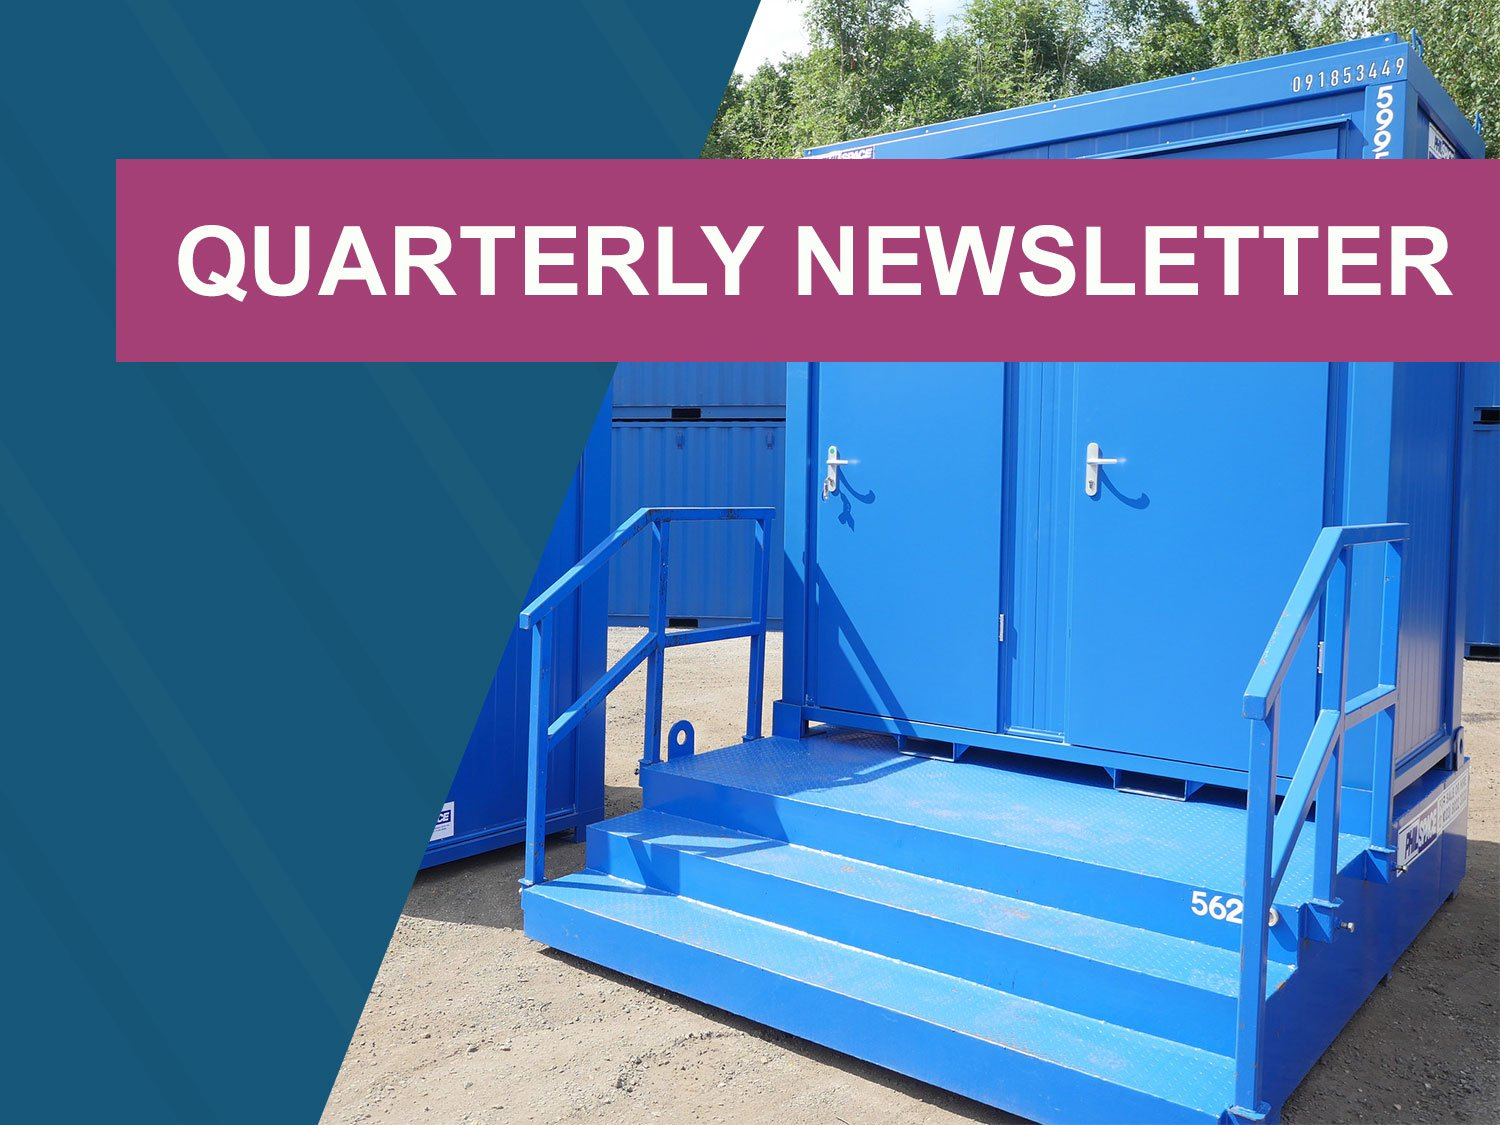 QUARTERLY NEWSLETTER – SEPTEMBER 2020